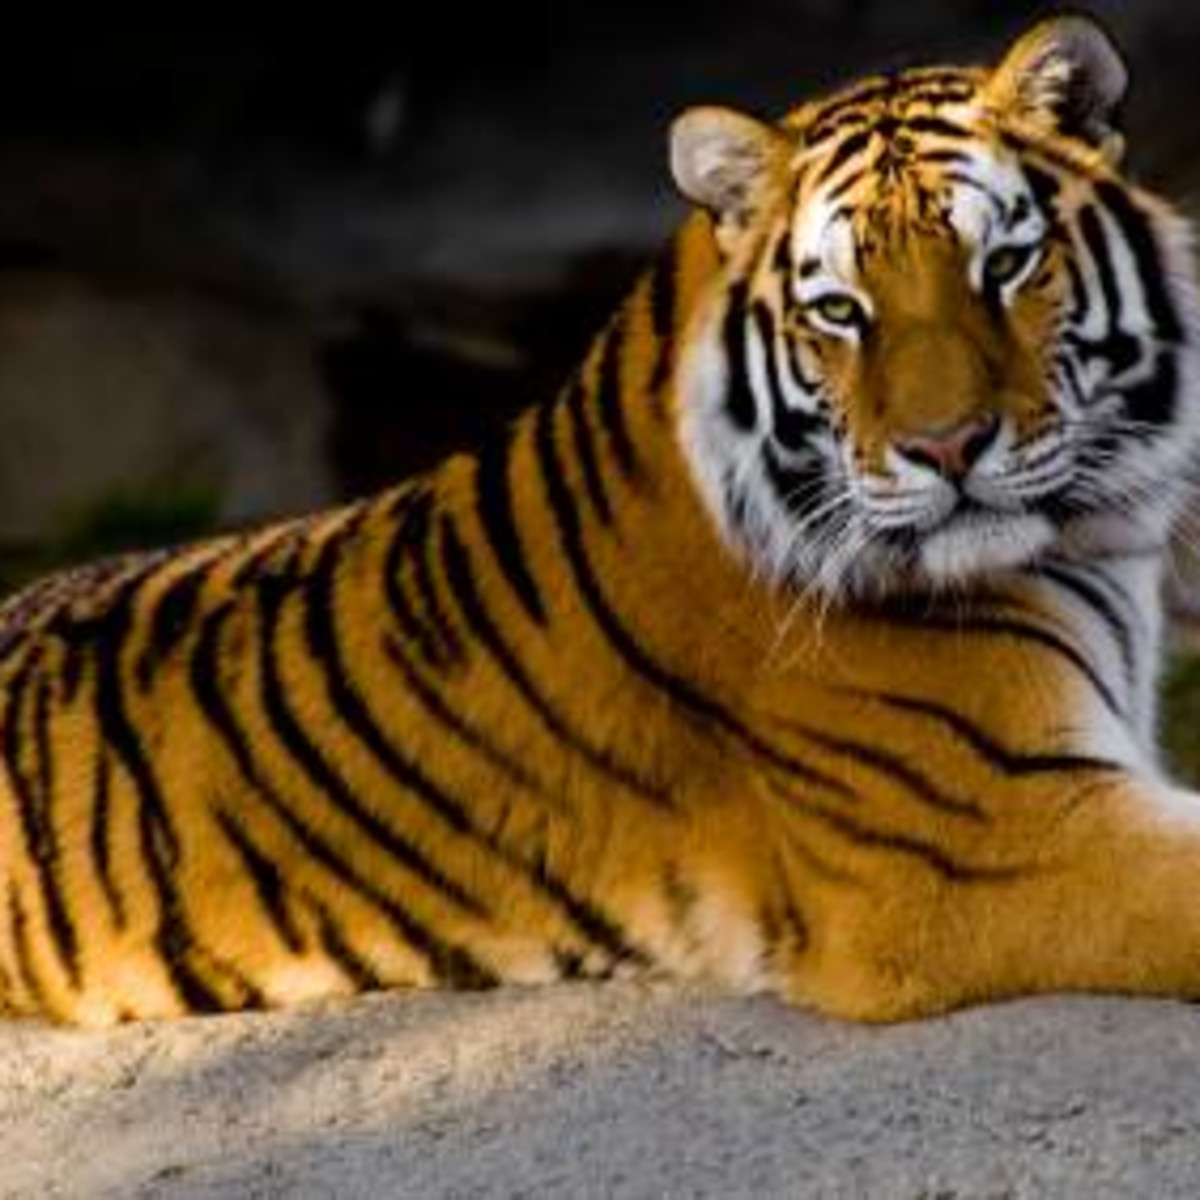 Austin_photo: places_outdoors_austin zoo_tiger